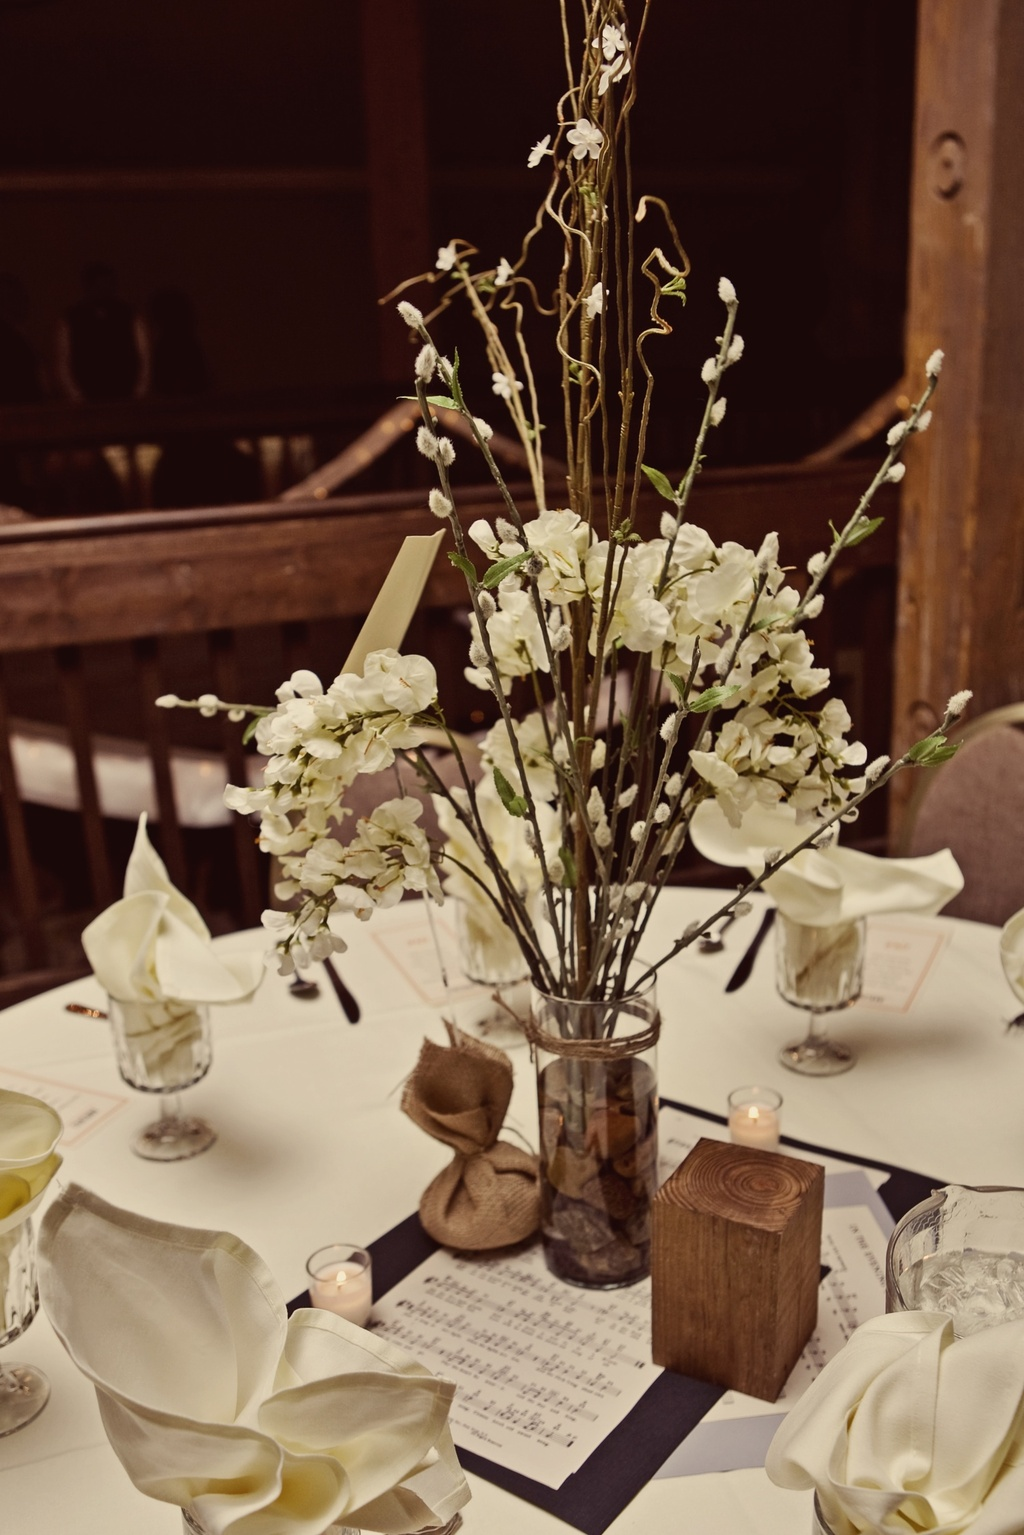 Rustic-real-wedding-reception-tablescape-ivory-wedding-flowers.full